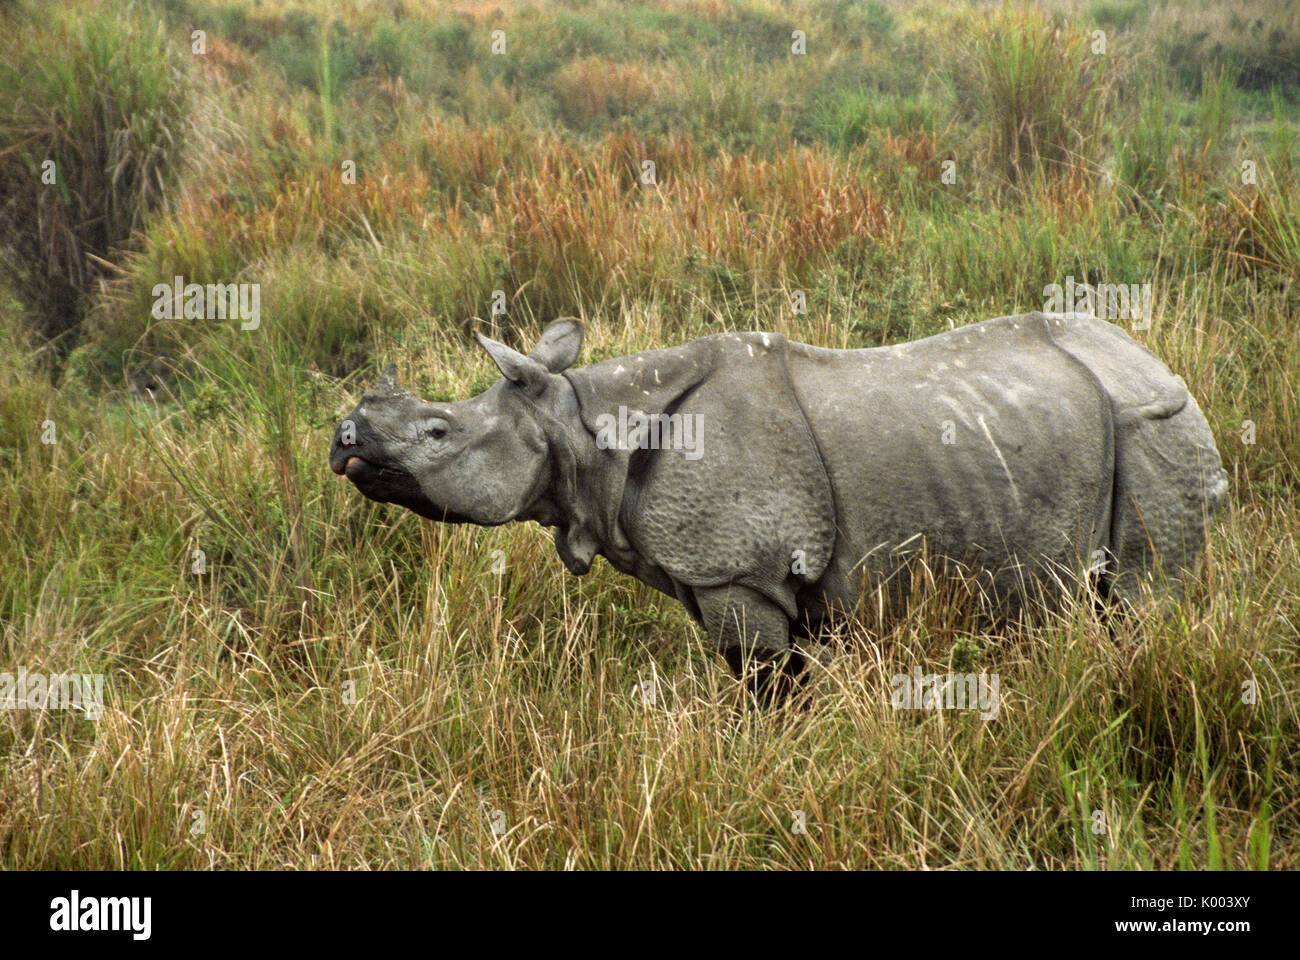 Asian one-horned rhinoceros, Kaziranga National Park, Assam, India - Stock Image